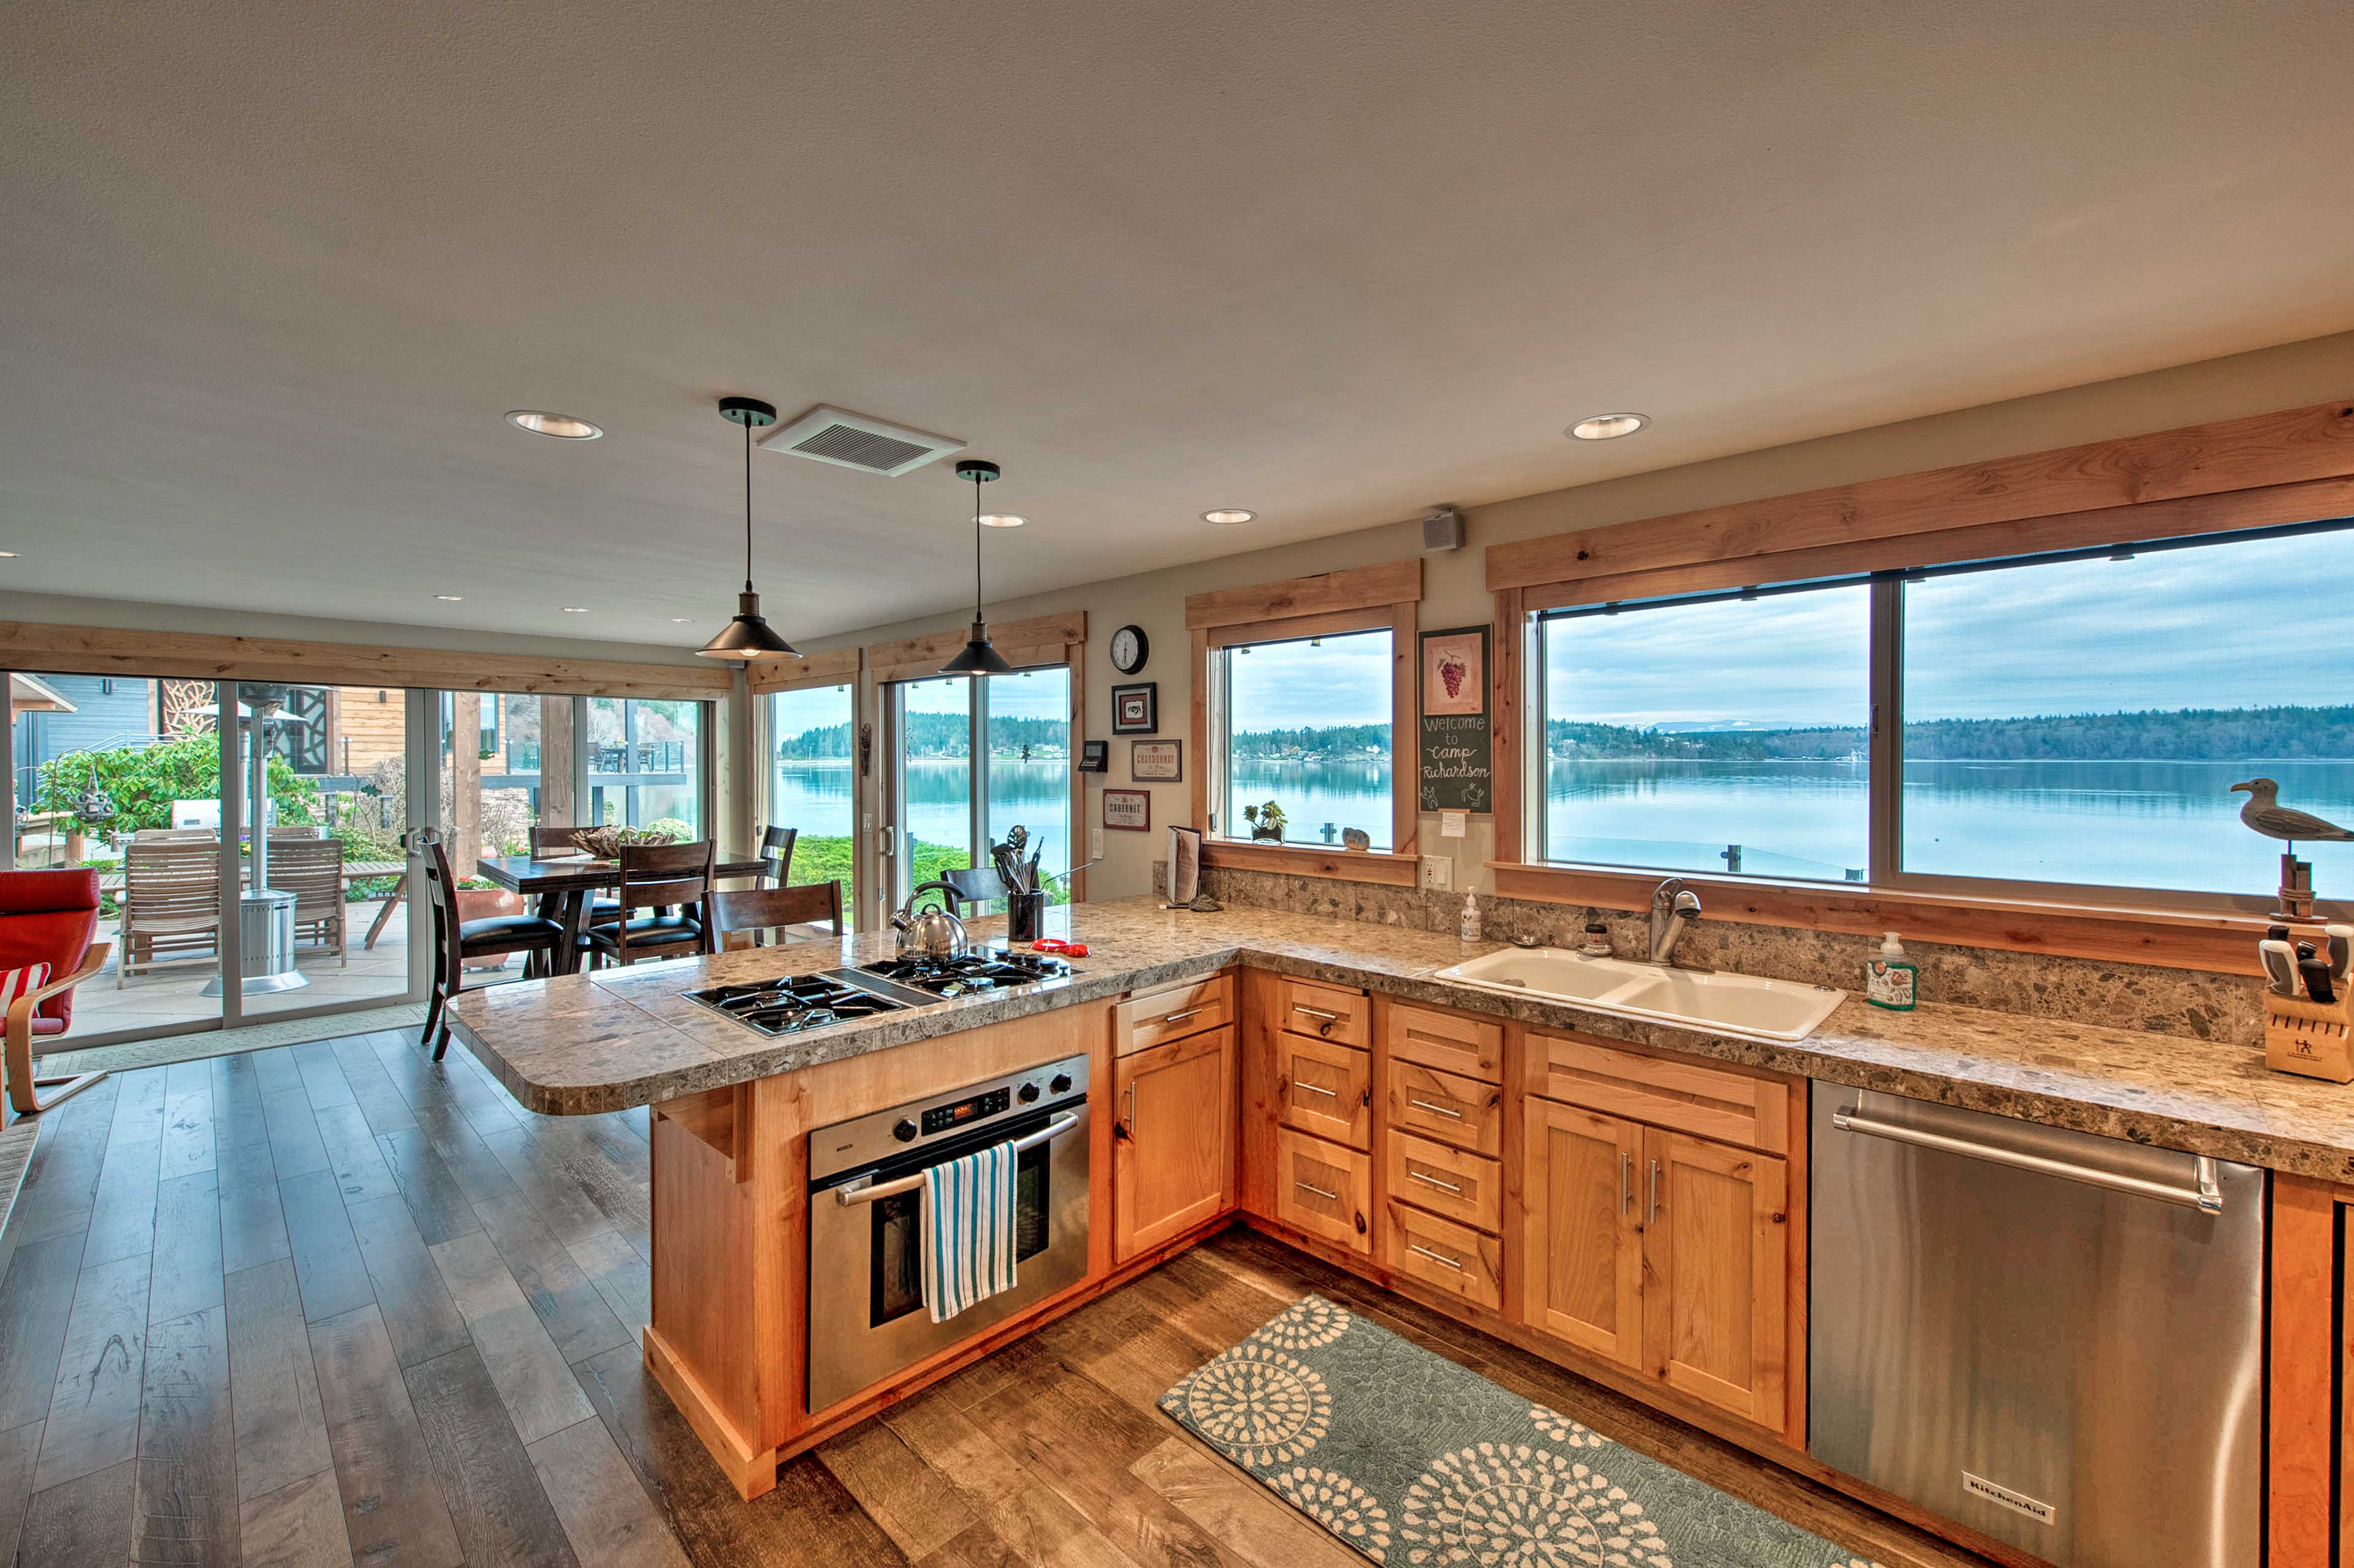 Whip up your favorite recipes and enjoy the panoramic lake views.